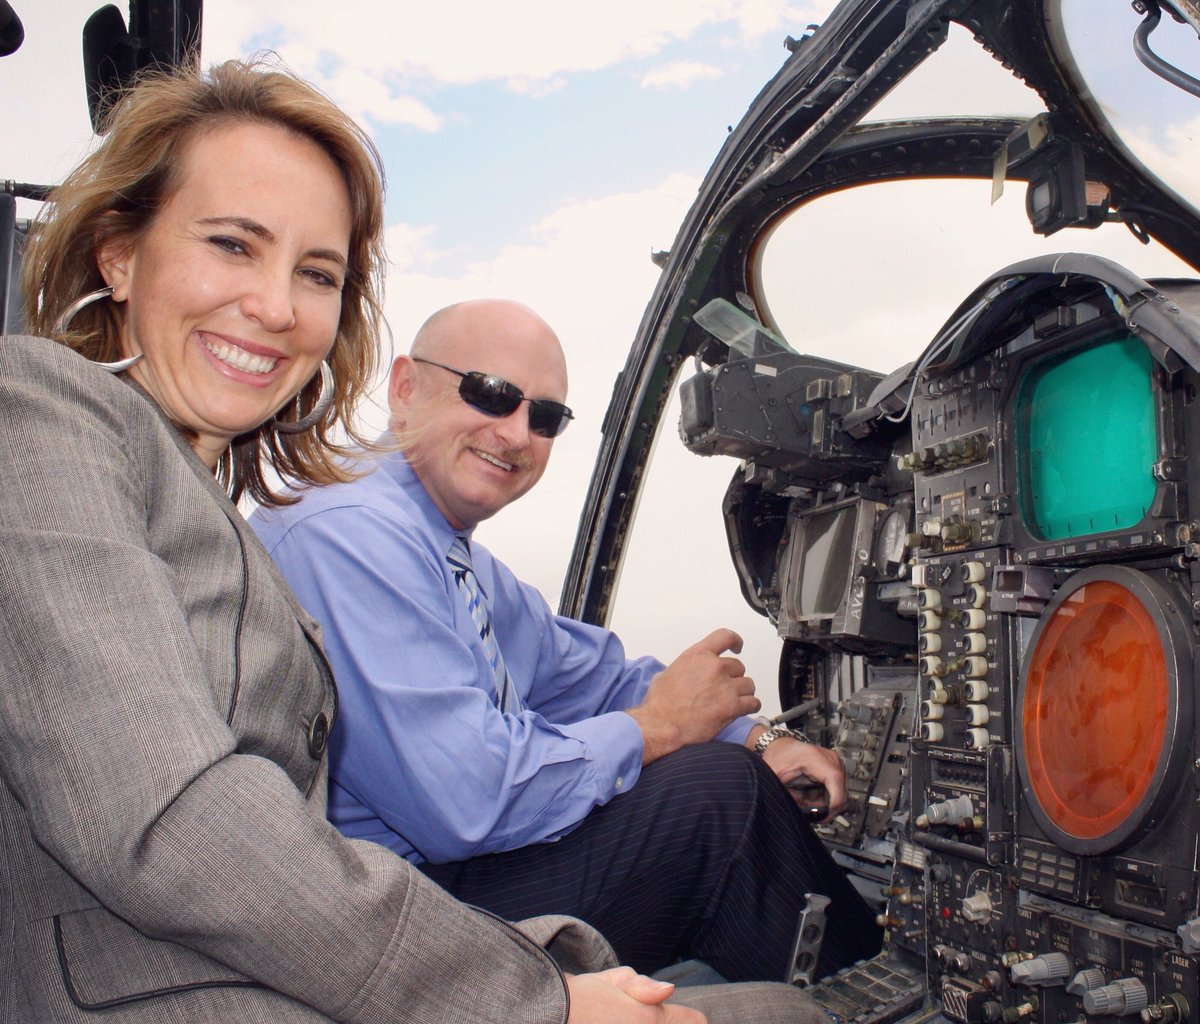 Happy birthday to the most inspiring and courageous person I know, my beautiful wife @GabbyGiffords.